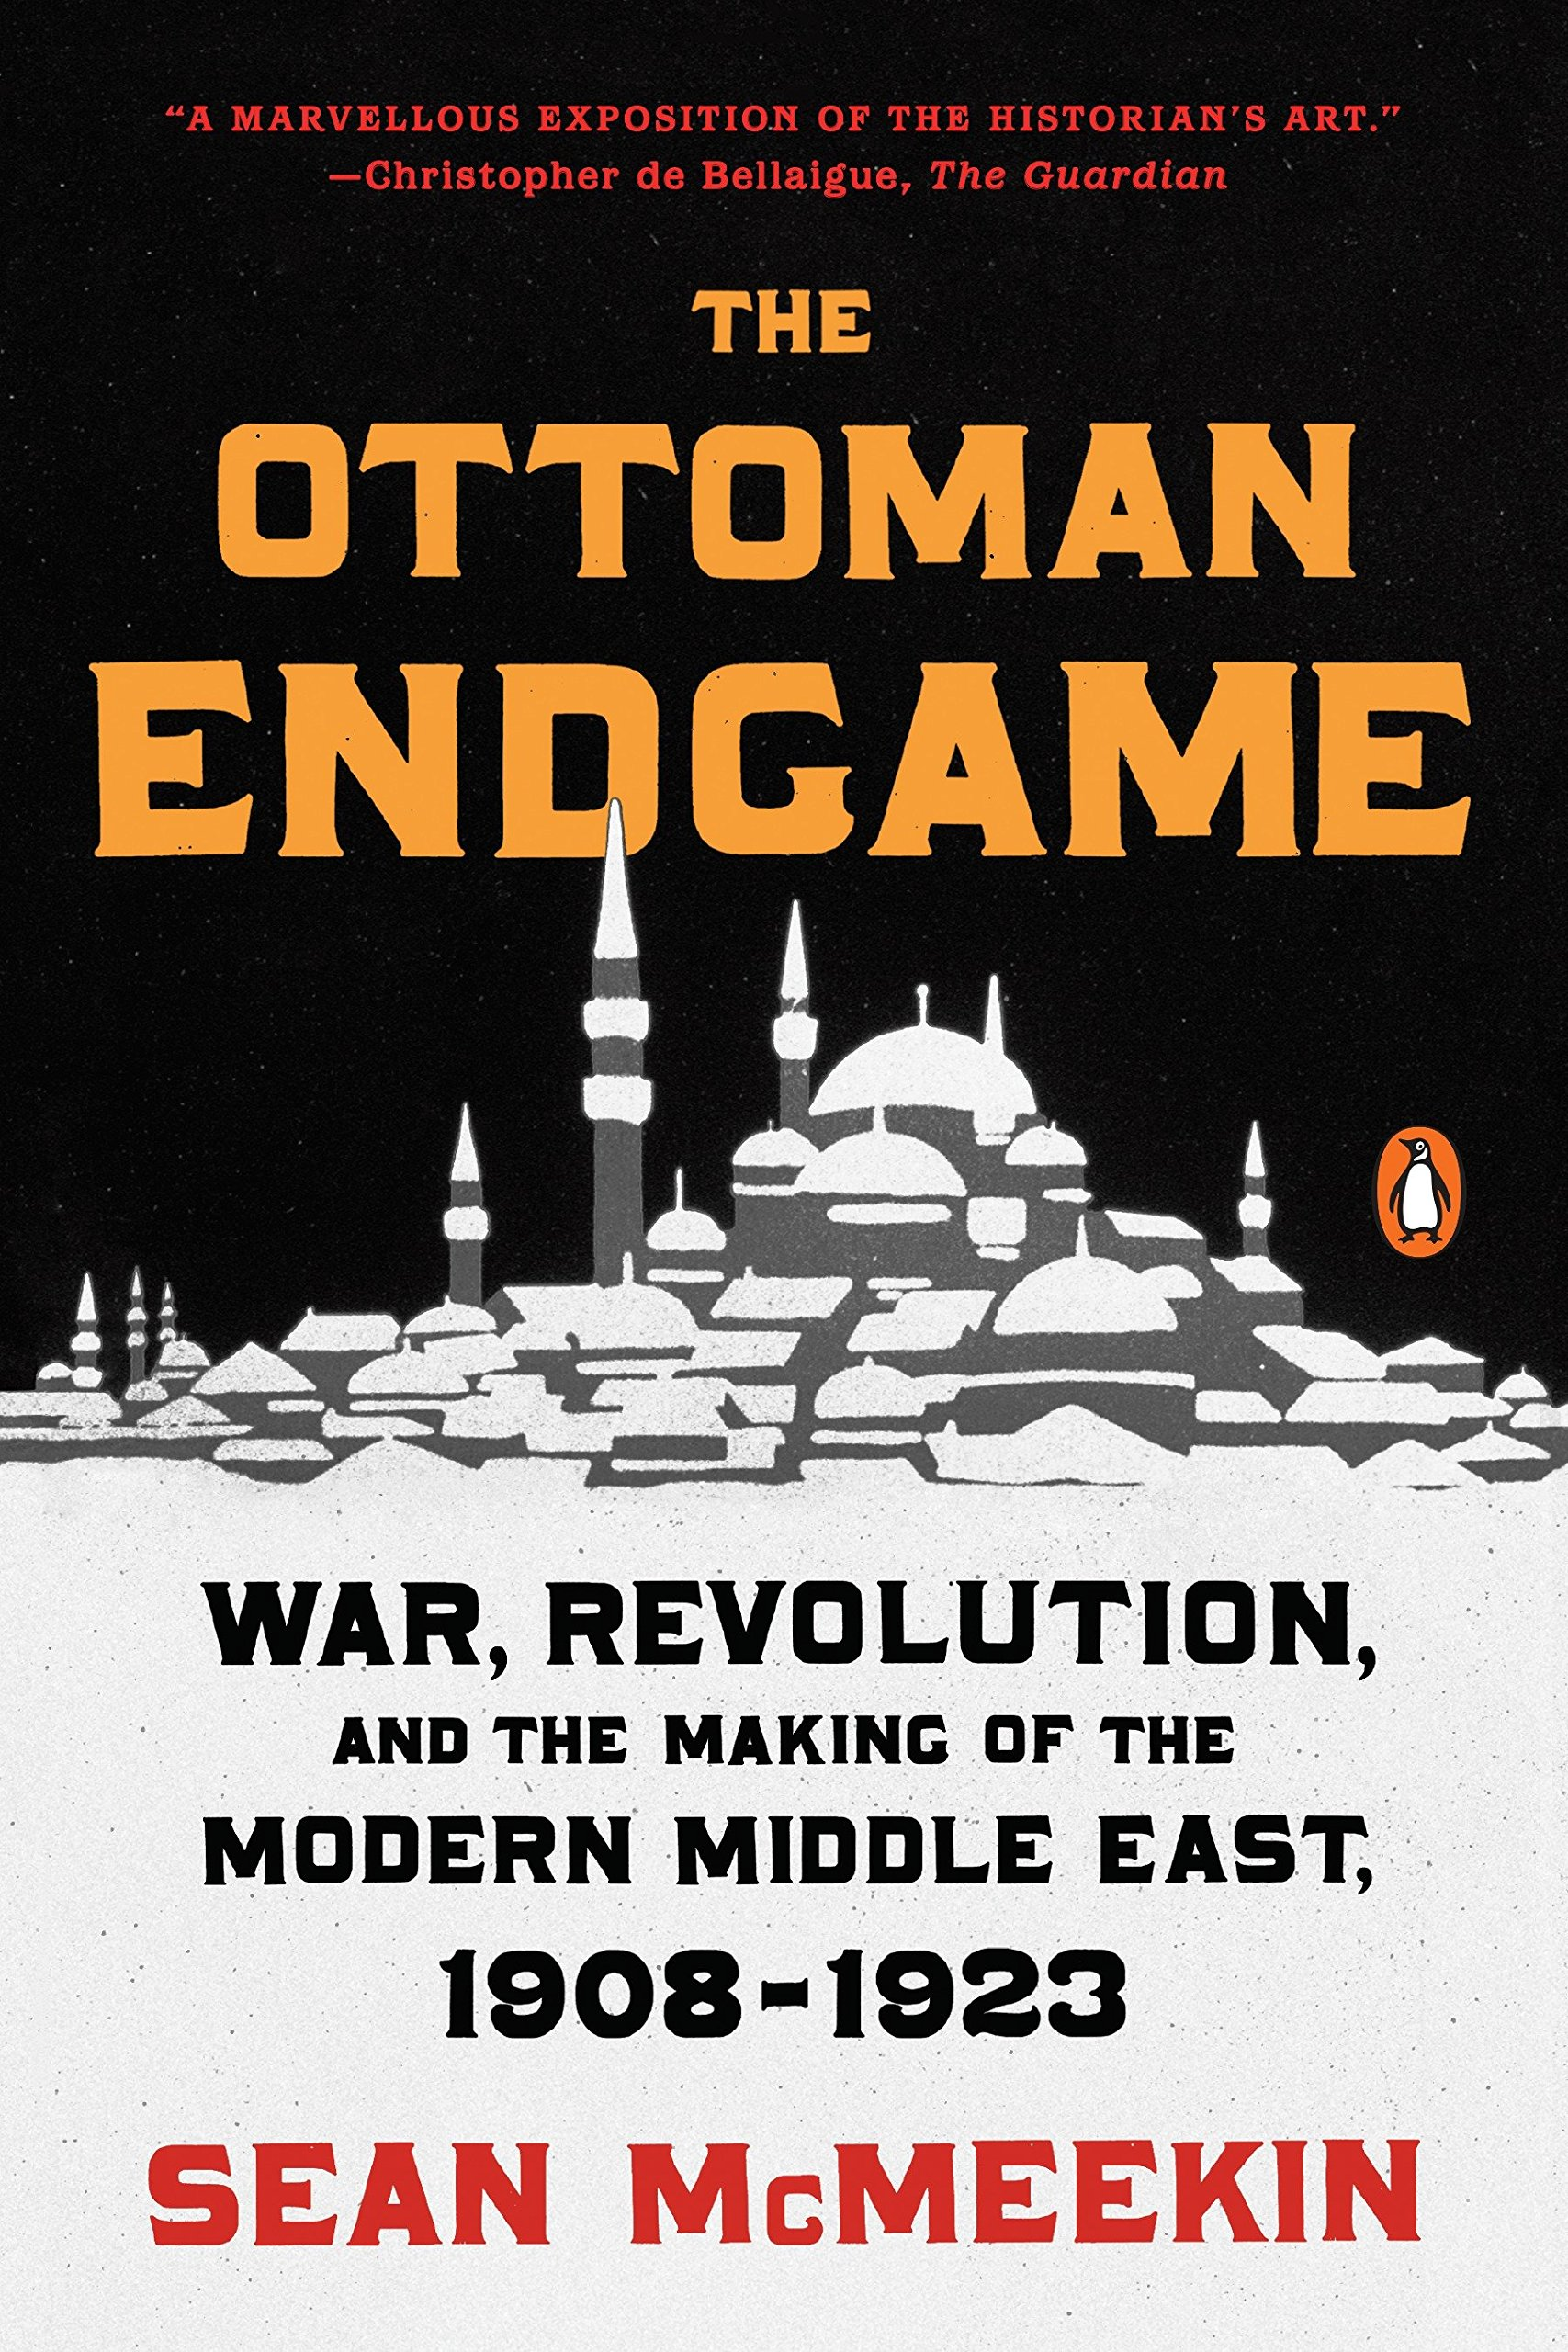 The Ottoman Endgame: War, Revolution, and the Making of the Modern Middle  East, 1908-1923: Sean McMeekin: 9780143109808: Amazon.com: Books